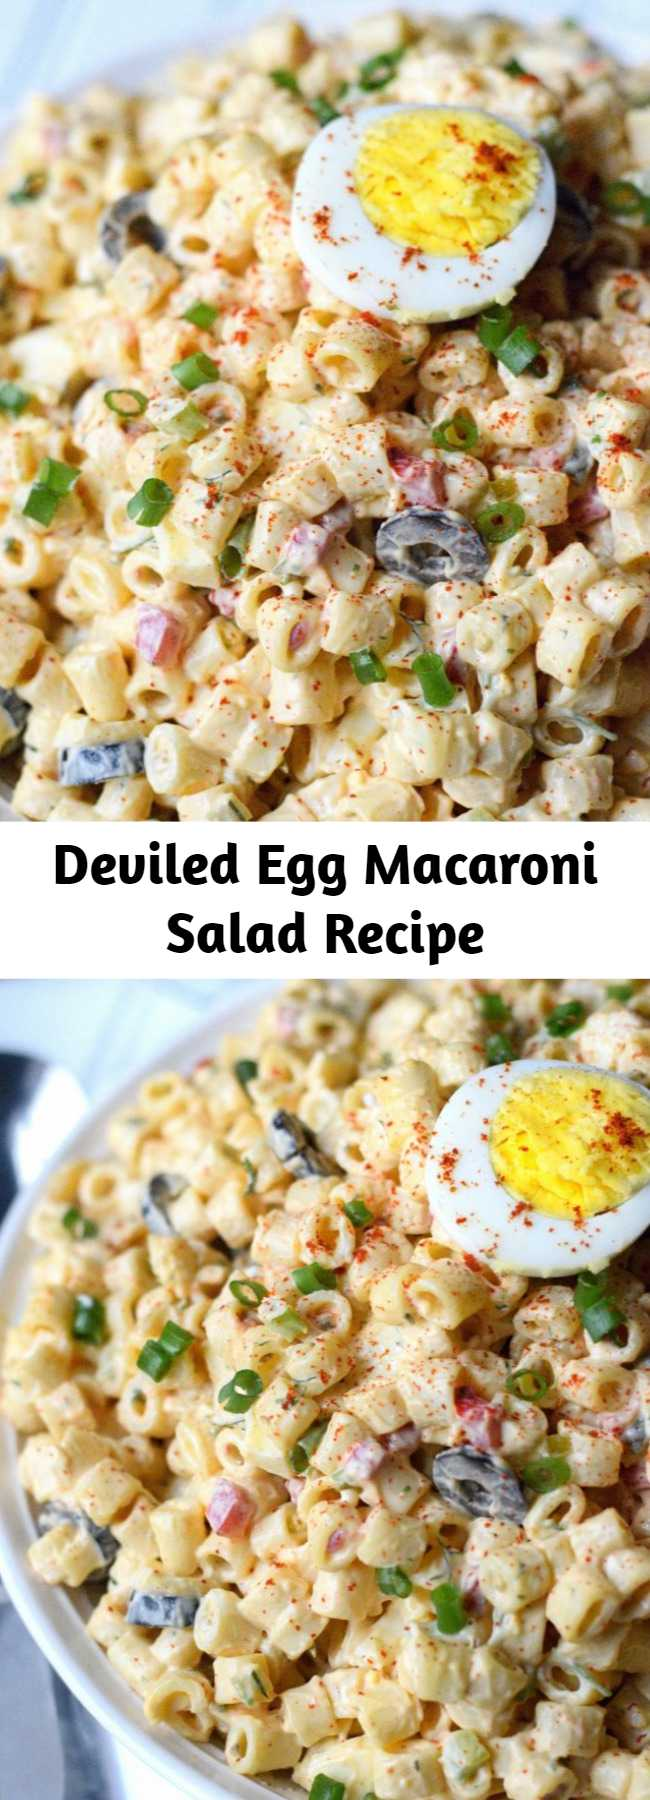 Deviled Egg Macaroni Salad Recipe - This deviled egg macaroni salad is creamy and loaded with hard boiled eggs. Quick and delicious and the perfect addition to any meal. #macaronisalad #pastasalad #summerfood #potluckside